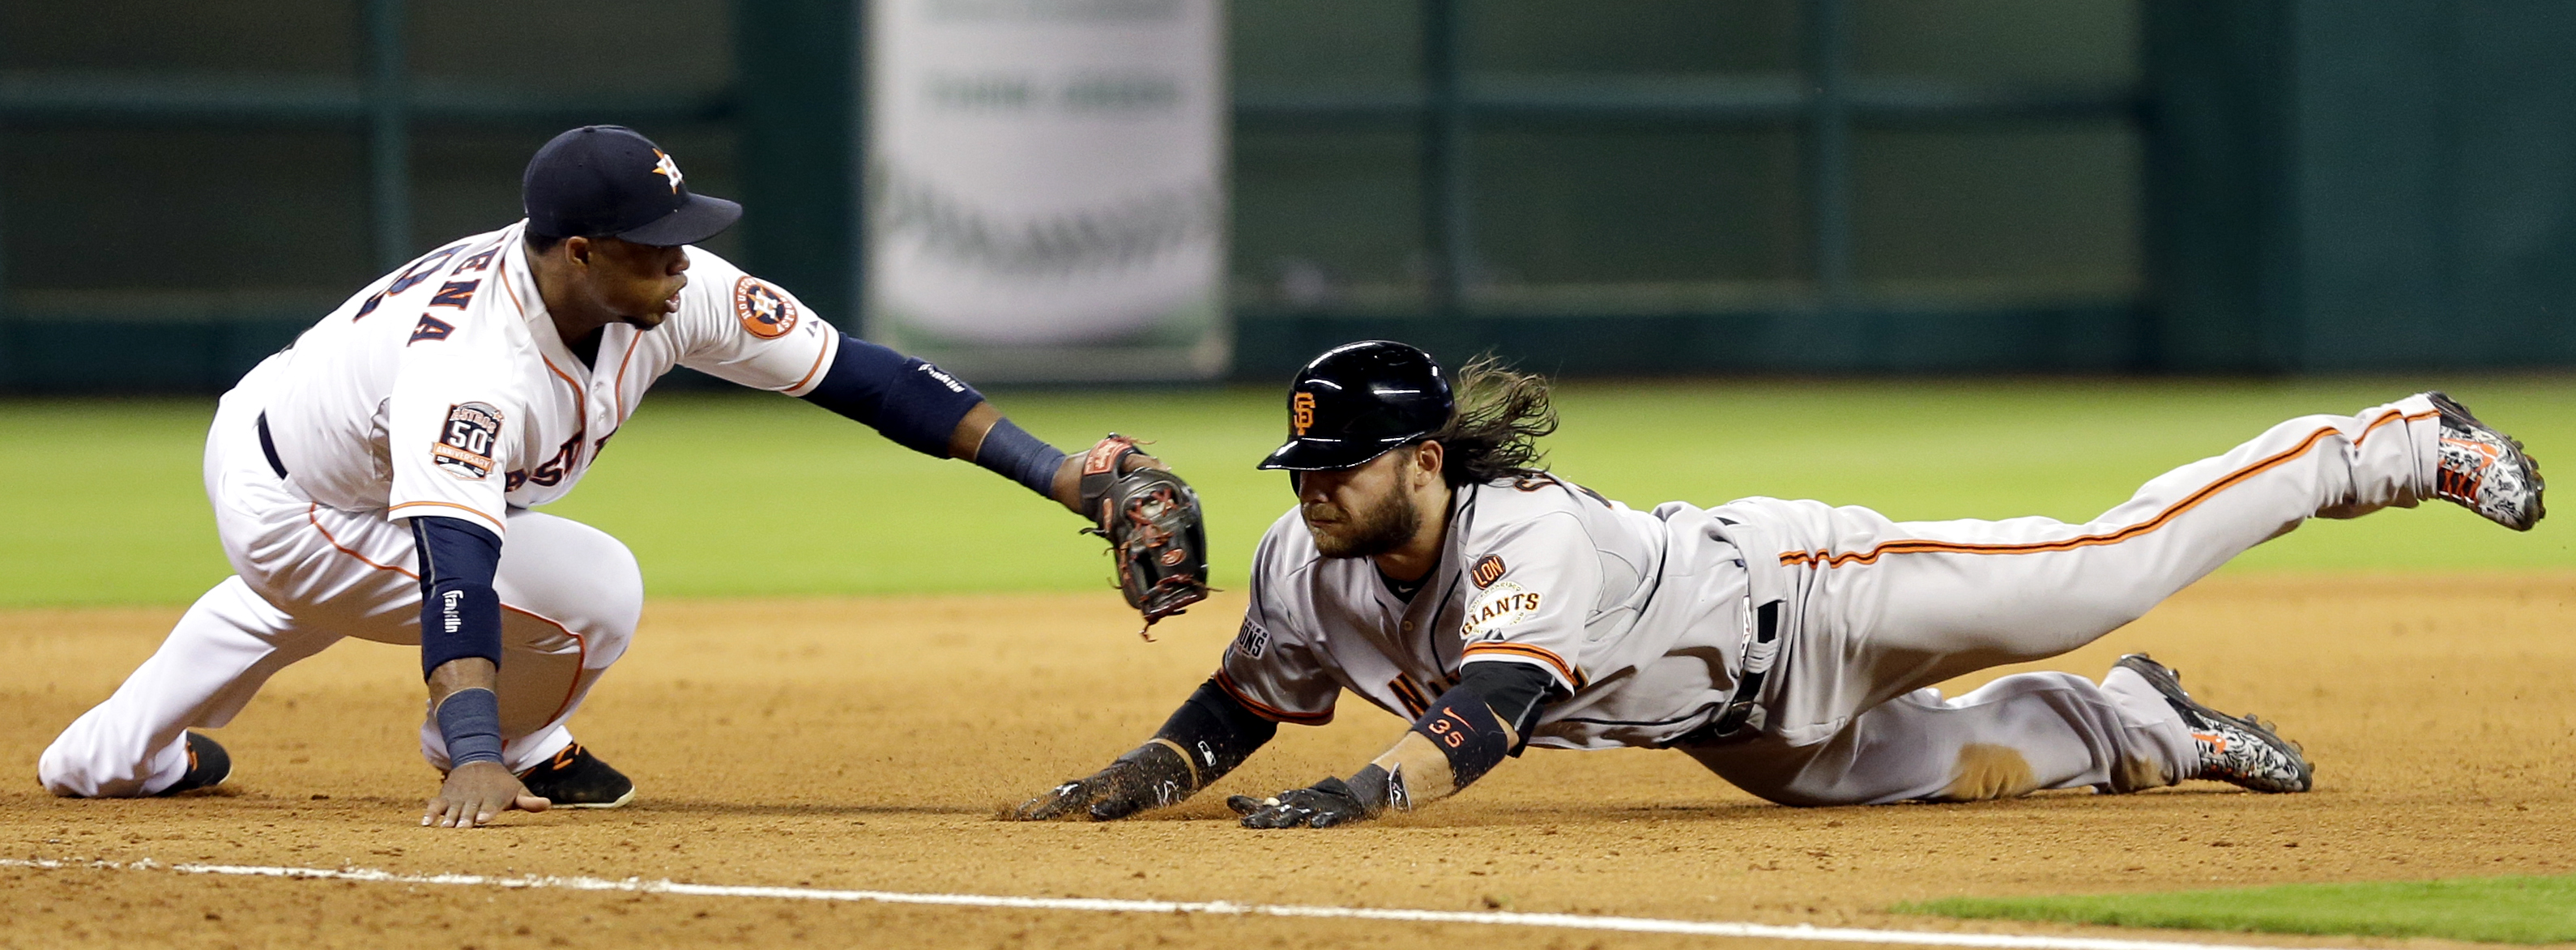 San Francisco Giants' Brandon Crawford, right, is tagged out by Houston Astros third baseman Luis Valbuena, left, while trying to advance from second to third on a ball hit by Nori Aoki during the ninth inning of a baseball game Wednesday, May 13, 2015, i